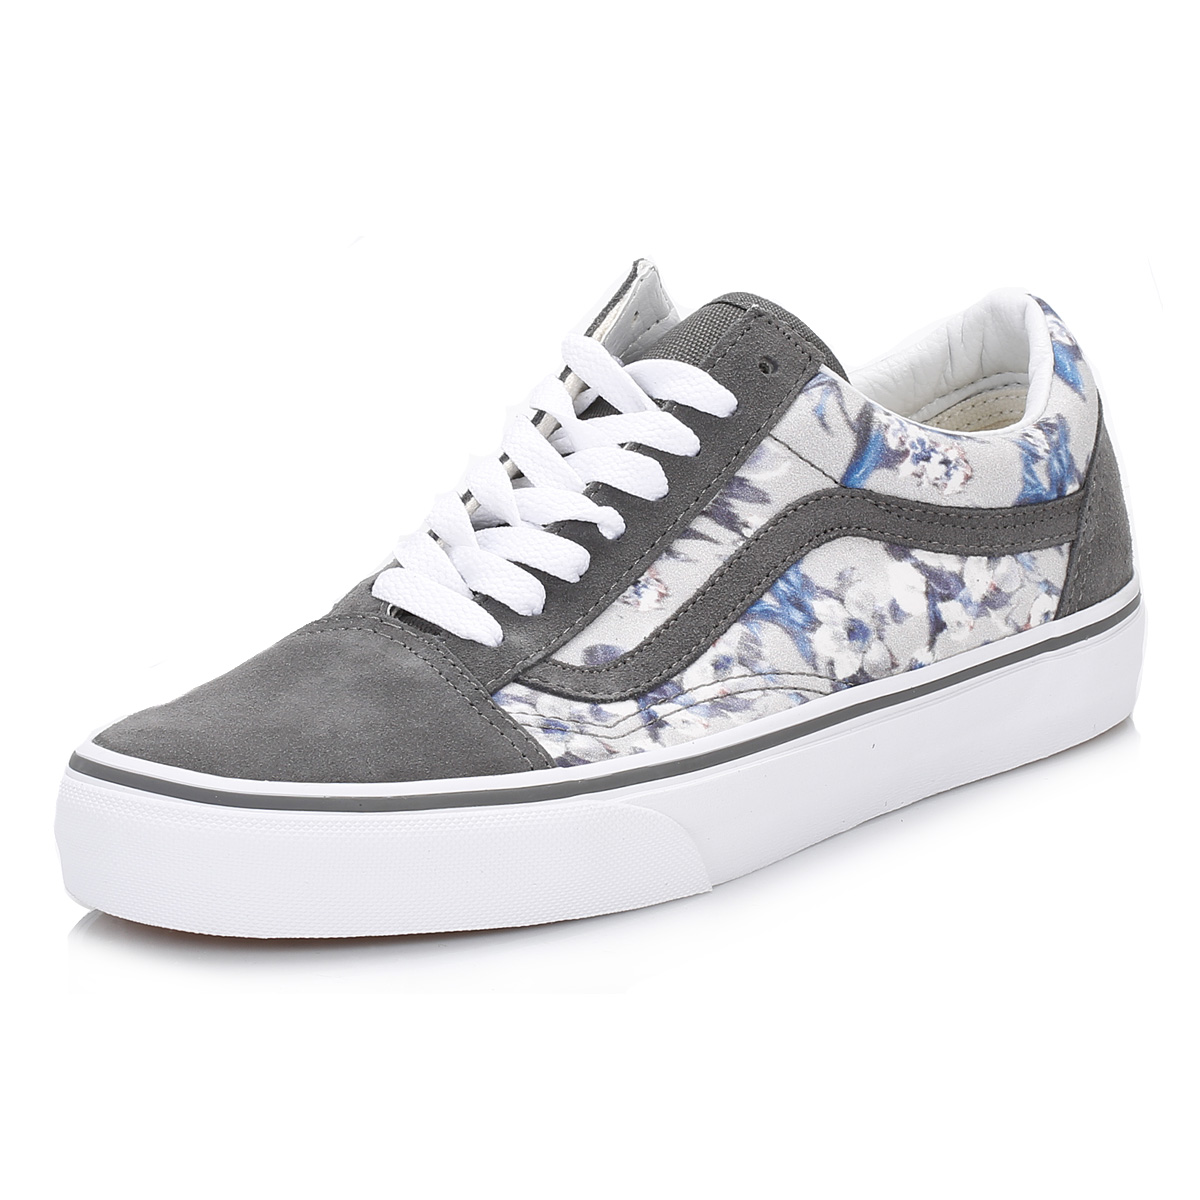 25cc064422 Vans Womens Floral Pewter White Old Skool Suede Trainers Lace Up ...